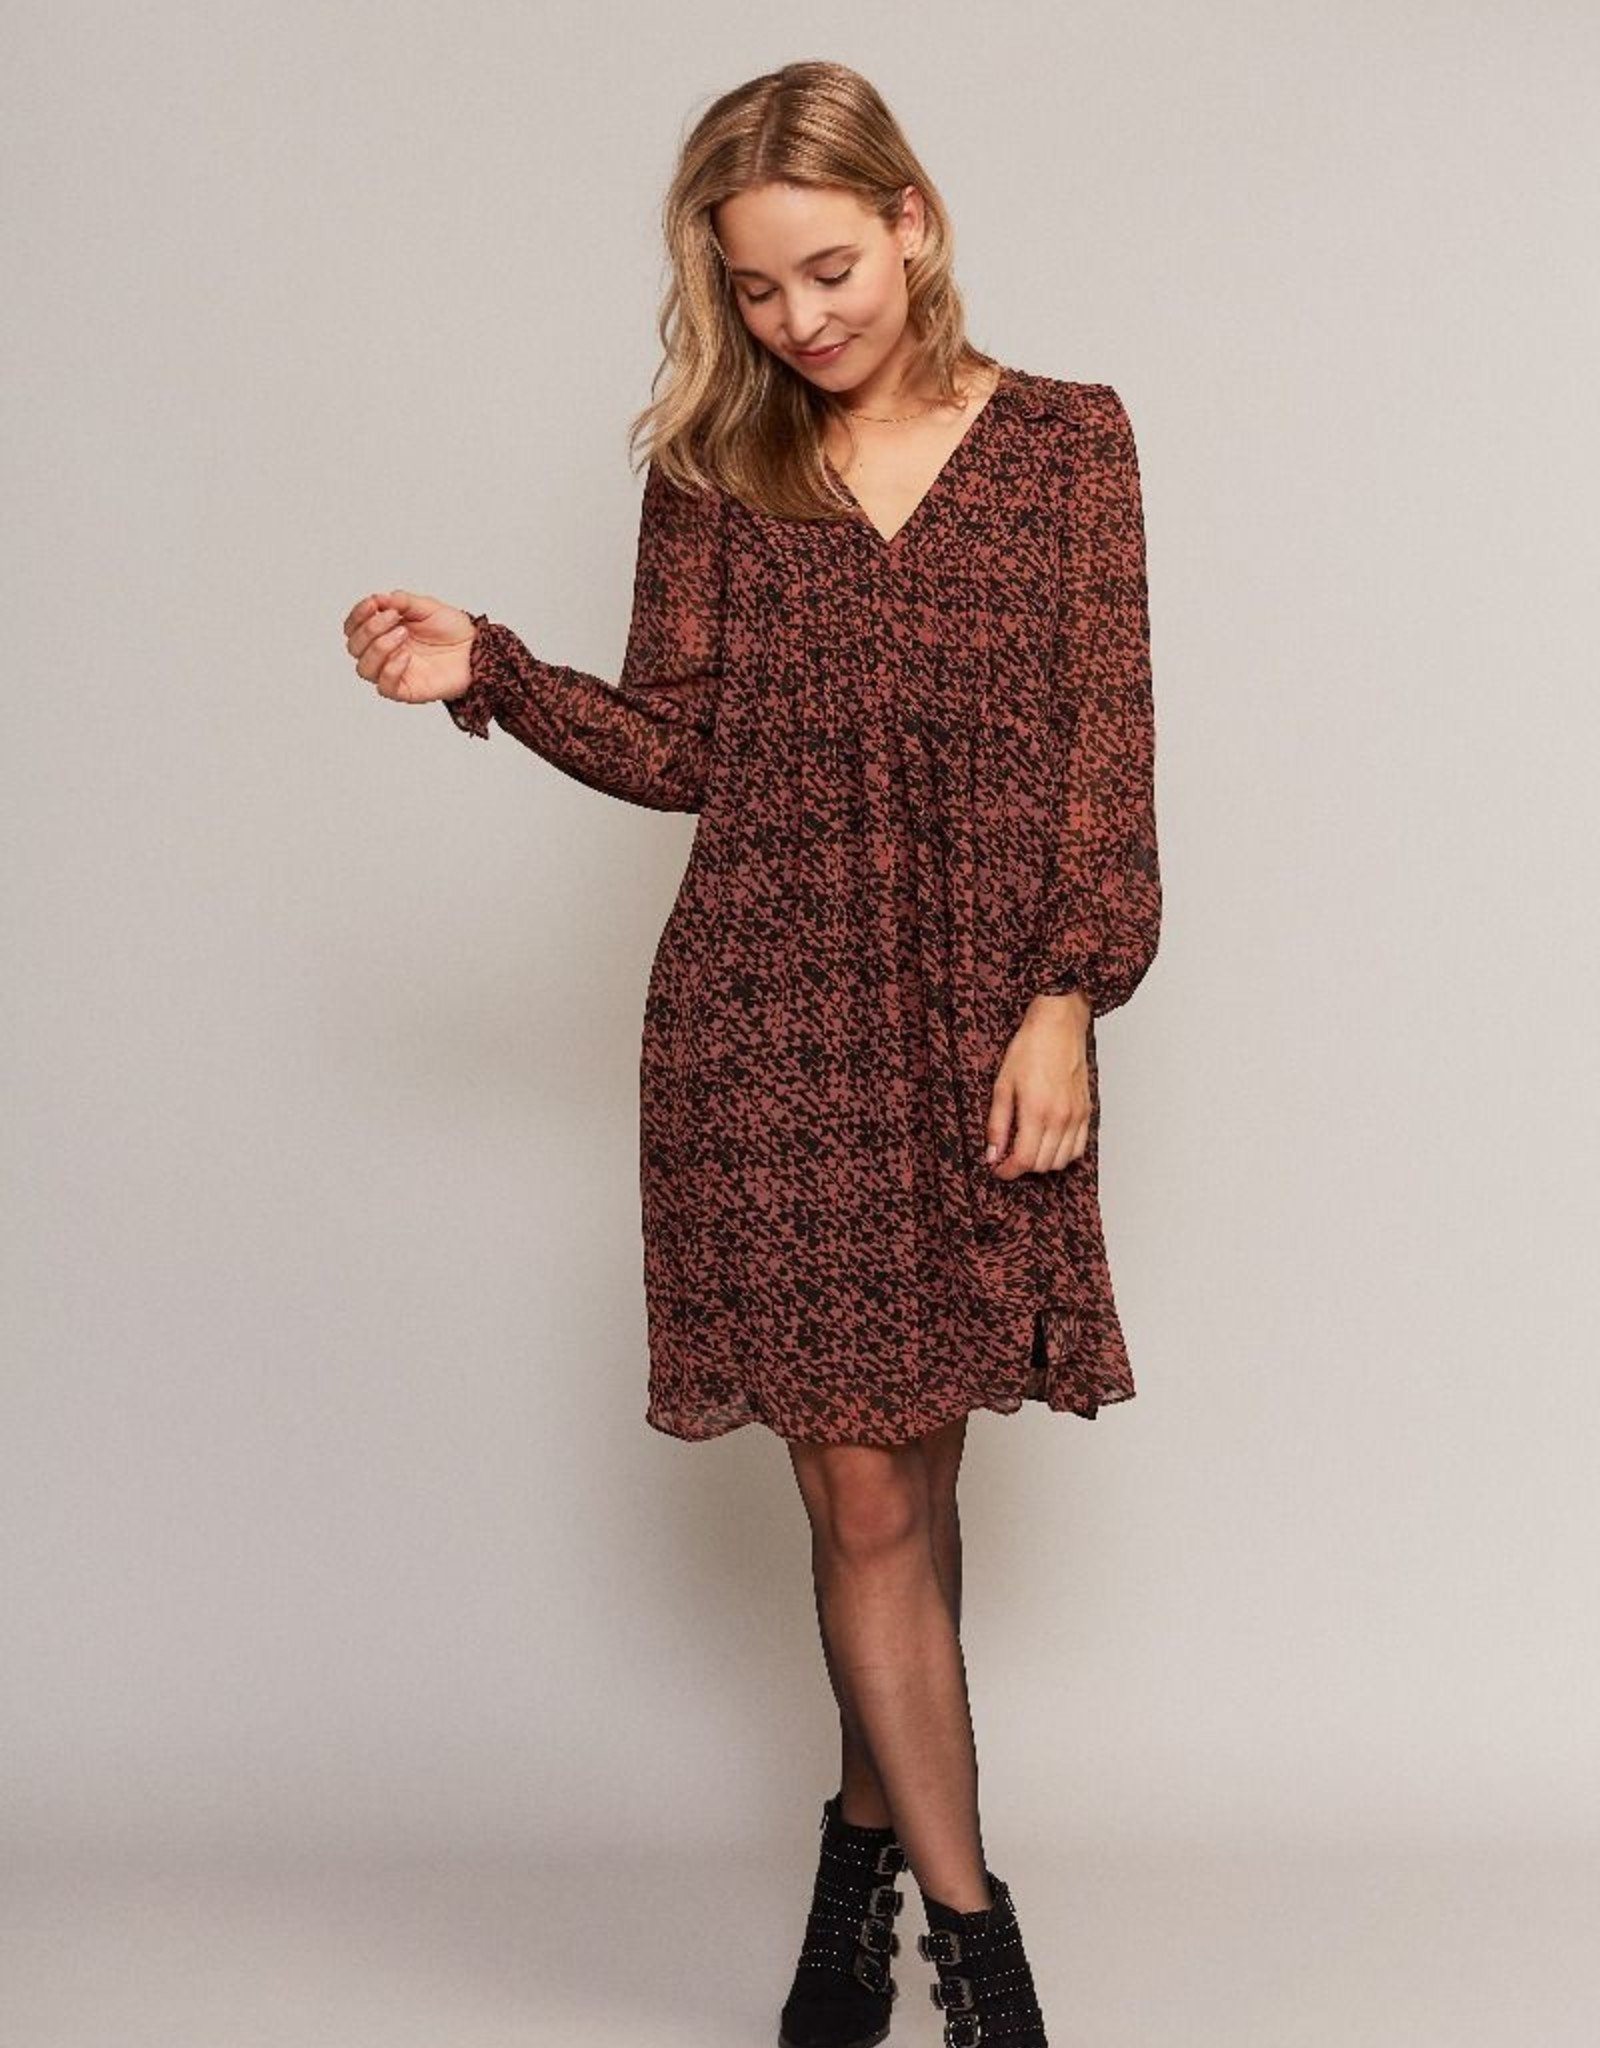 C&S Dress Rust brown with Black